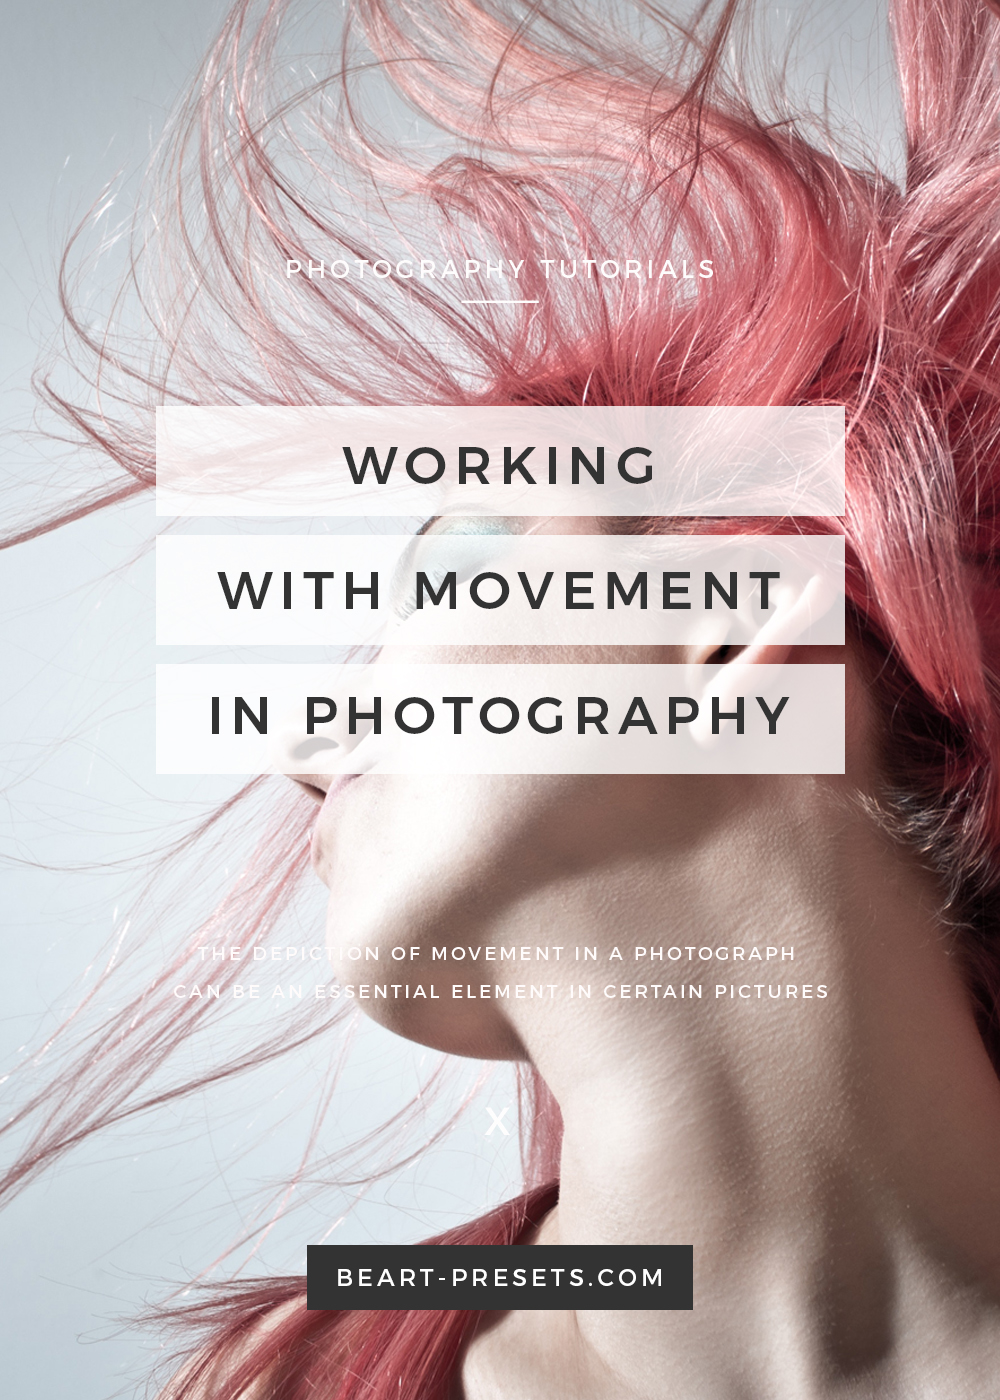 WORKING WITH MOVEMENT IN PHOTOGRAPHY